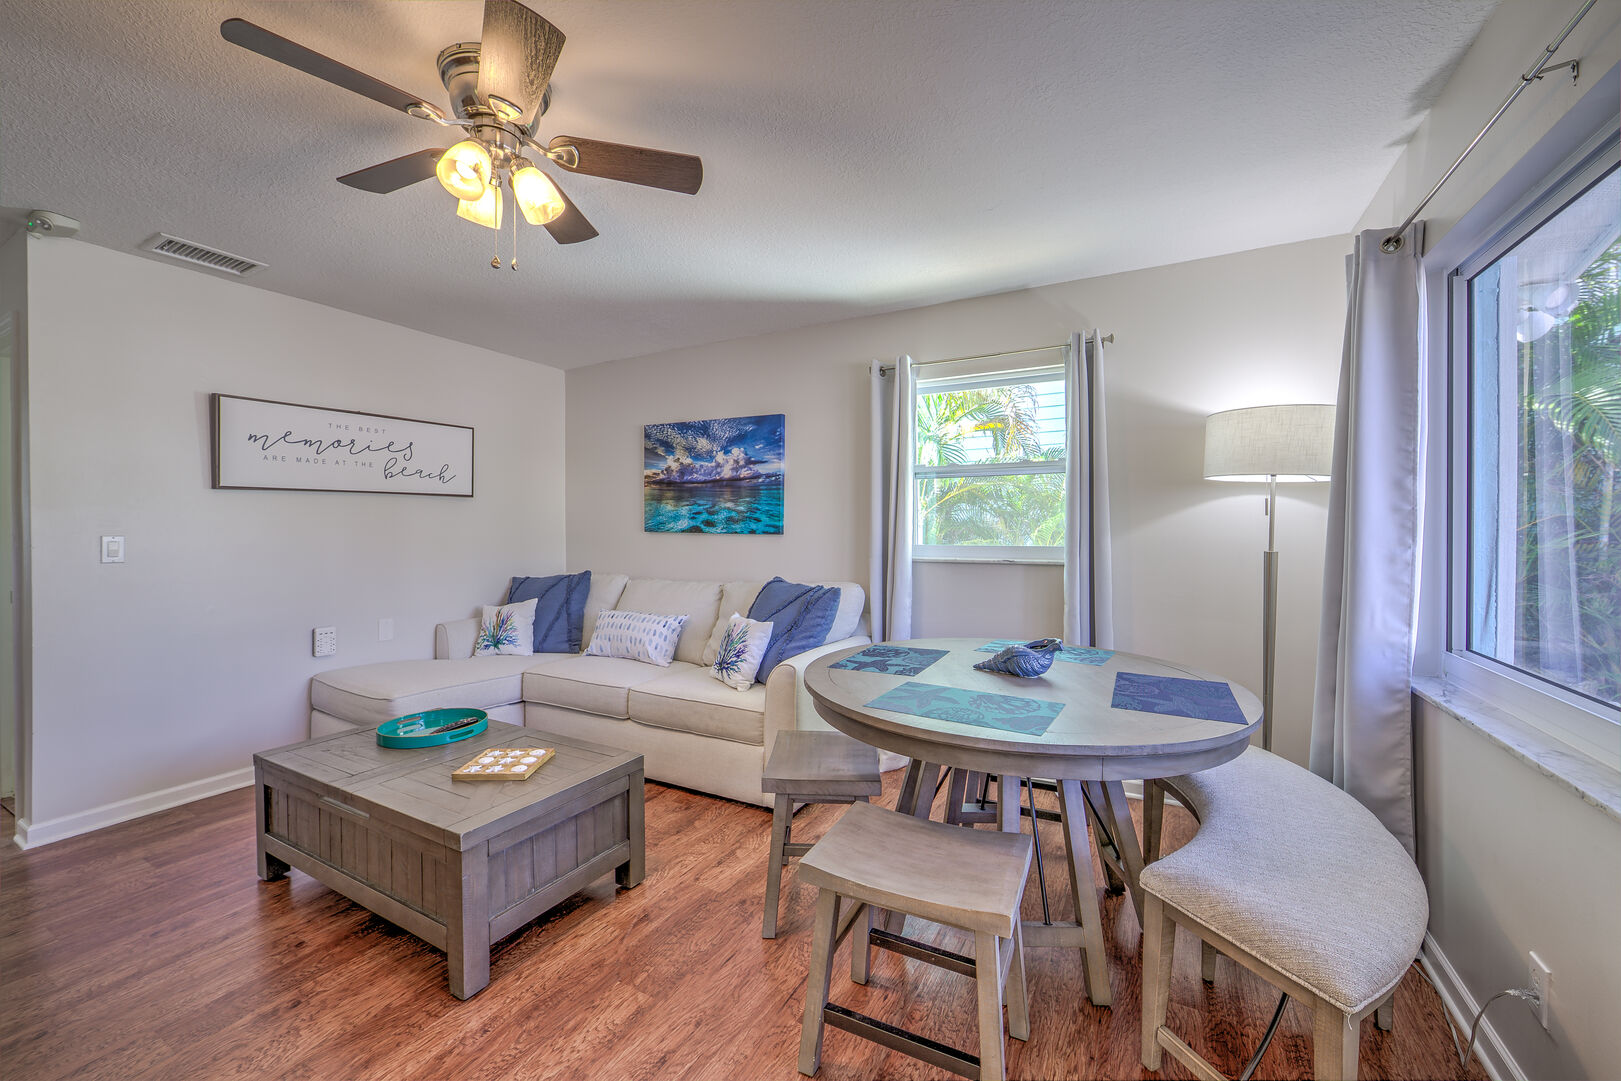 Small dining room of the Vacation Homes in Fort Myers